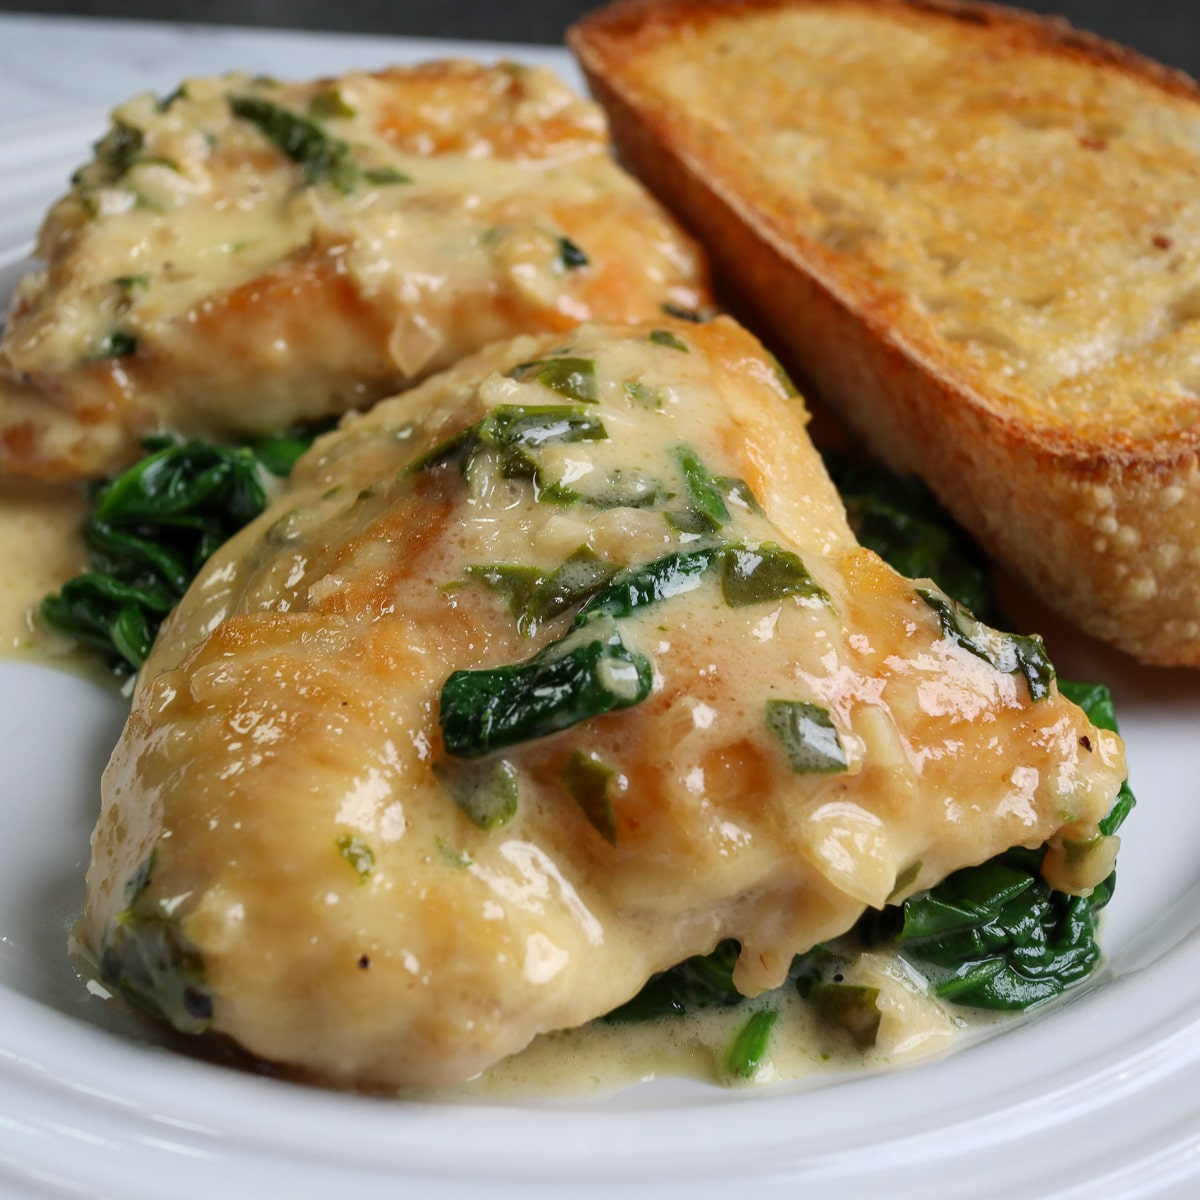 finished dish with the chicken florentine on a plate